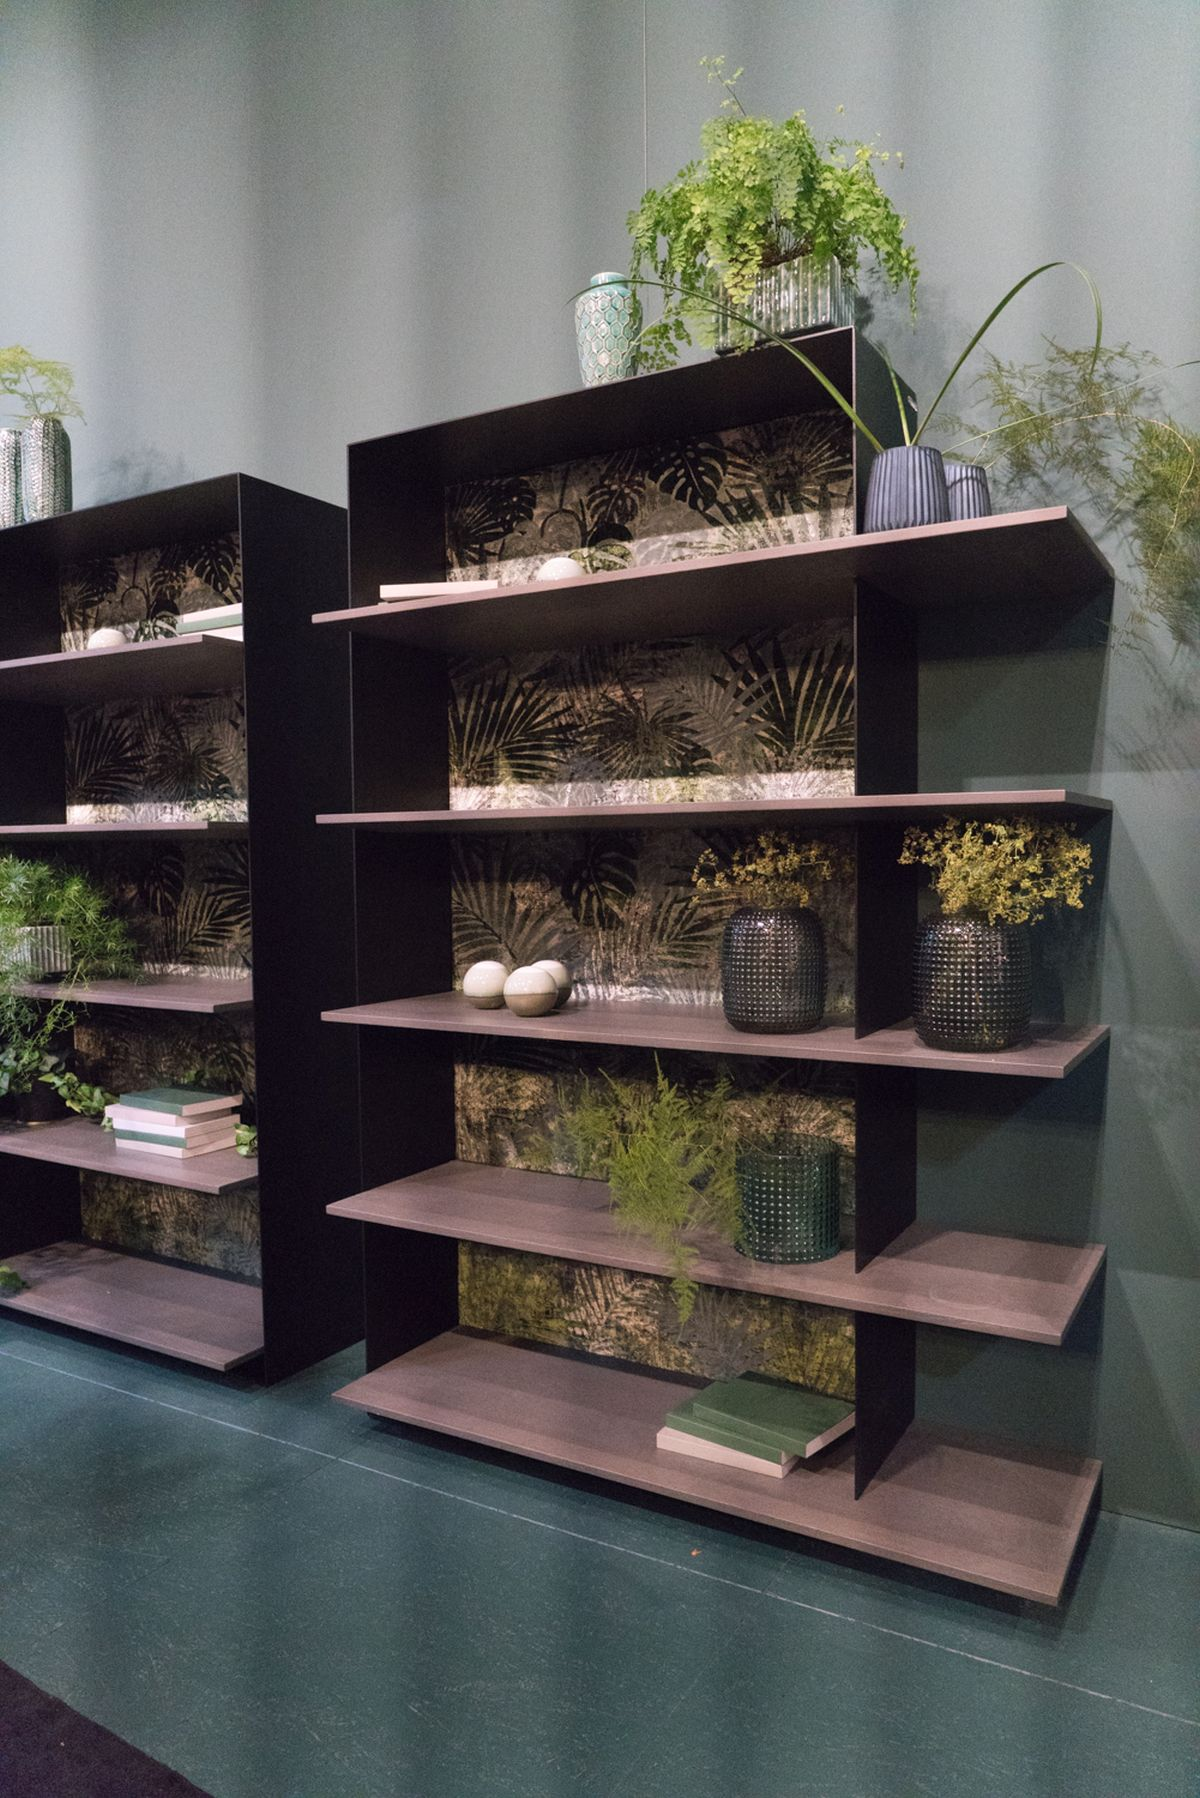 Shelving units can have an open back or a back panel which can have a special role in the decor of a space